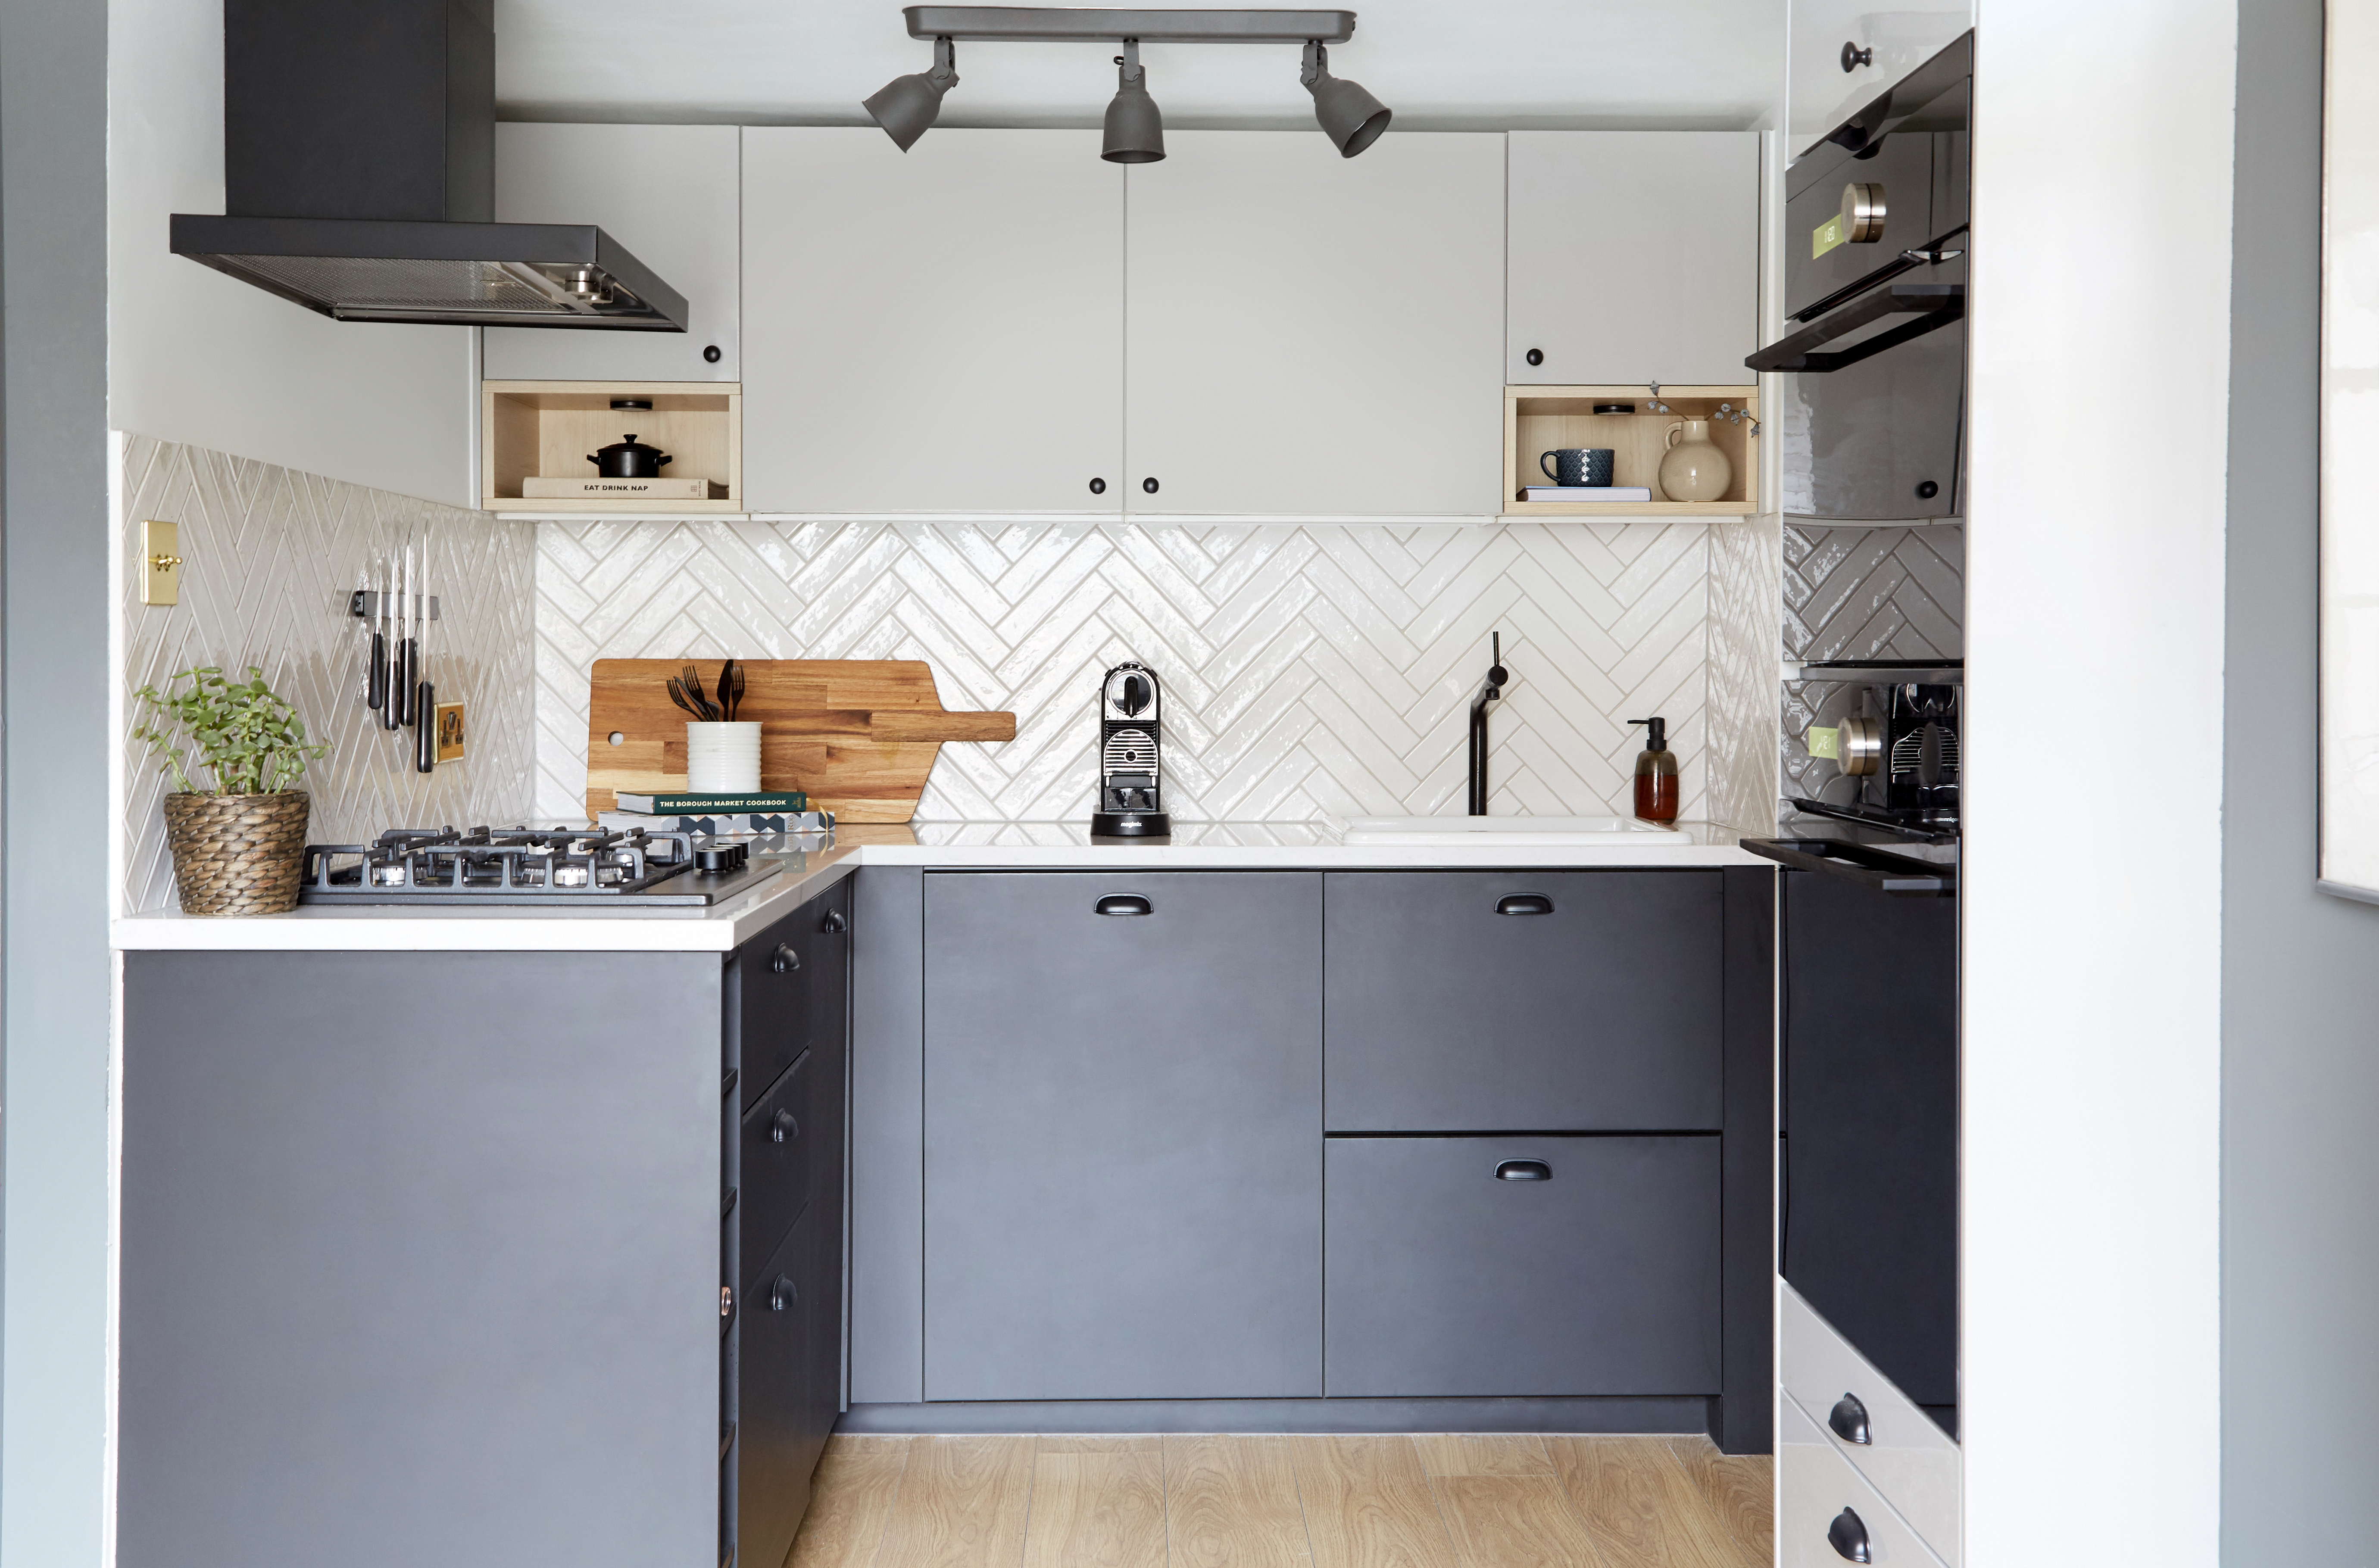 Ikea kitchen makeover